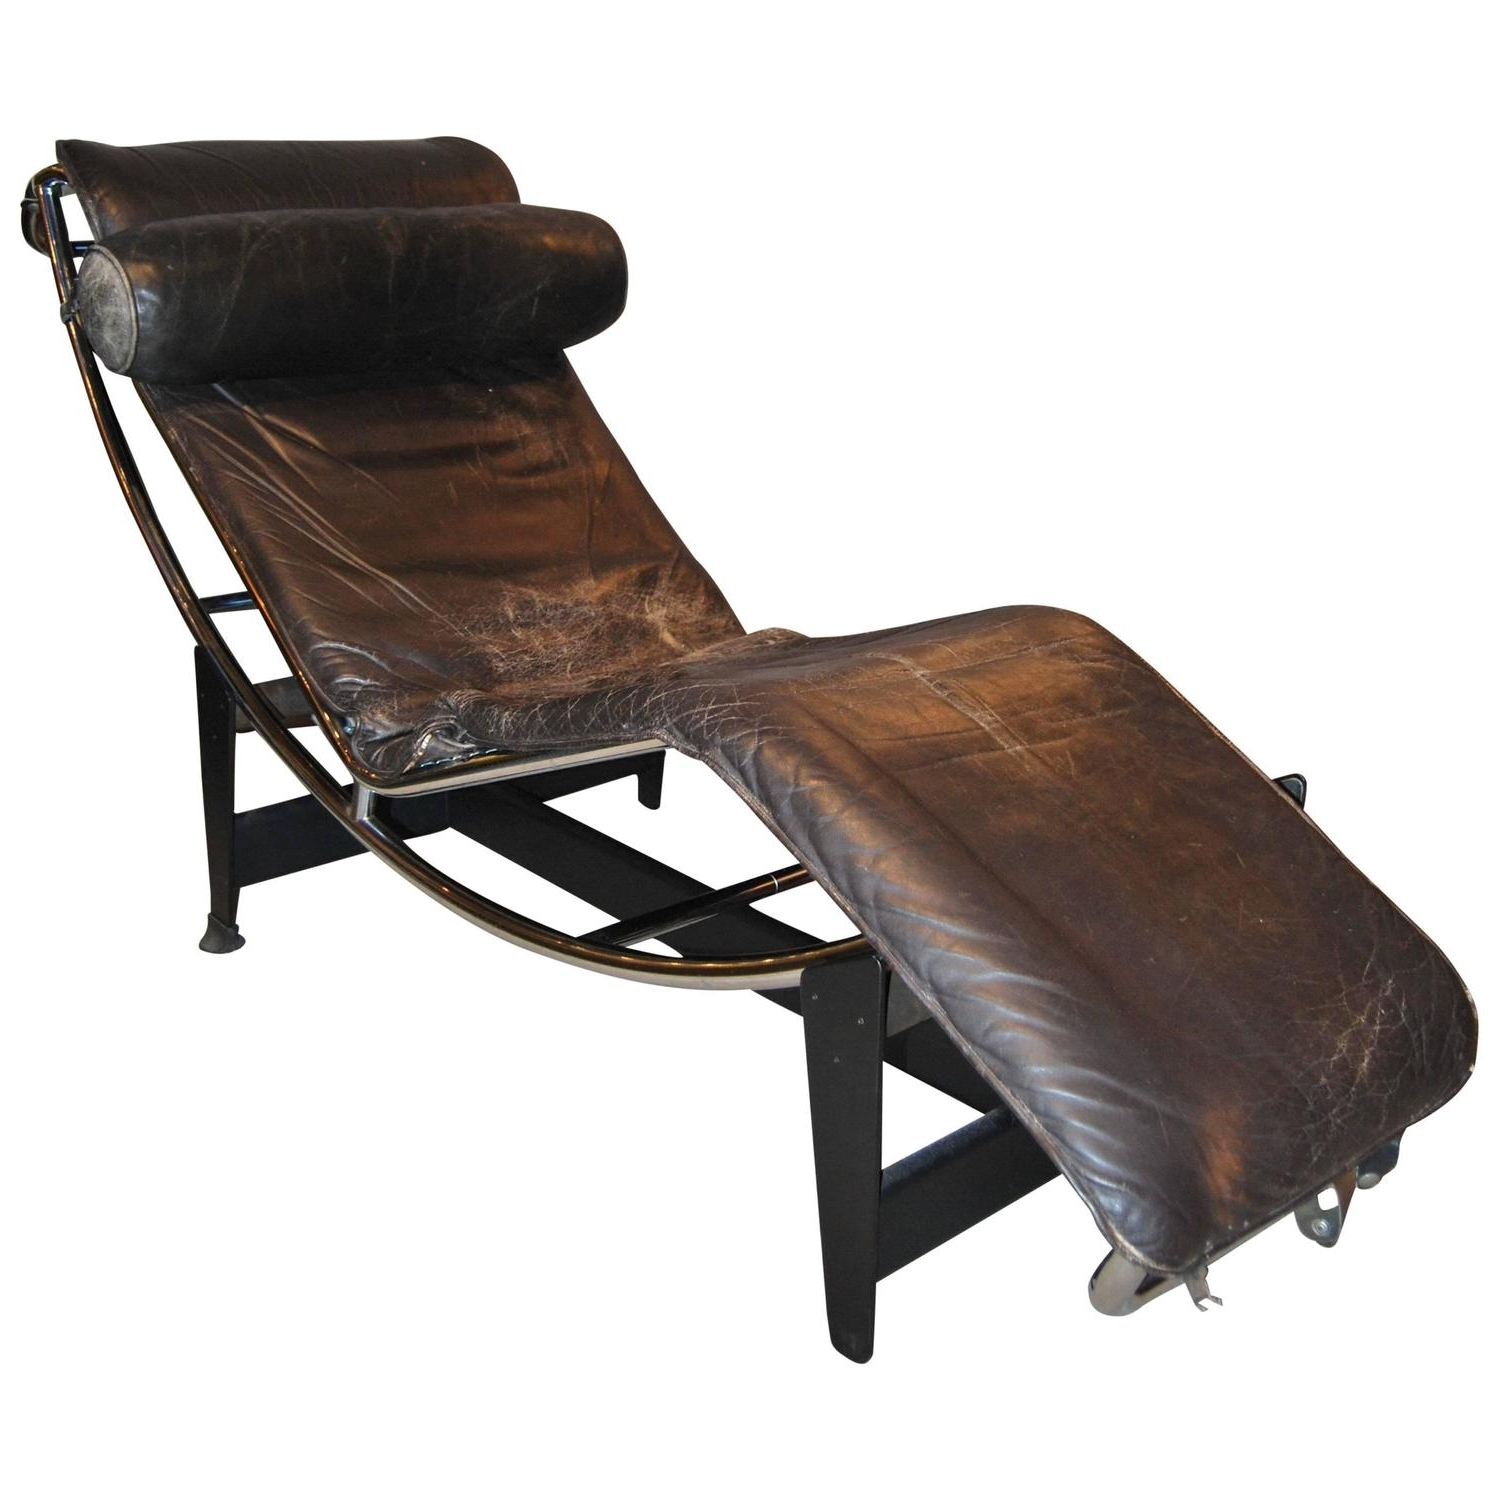 Early Le Corbusier/jeanneret/perriand Lc4 Chaise Lounge For Sale Regarding Fashionable Le Corbusier Chaises (View 6 of 15)